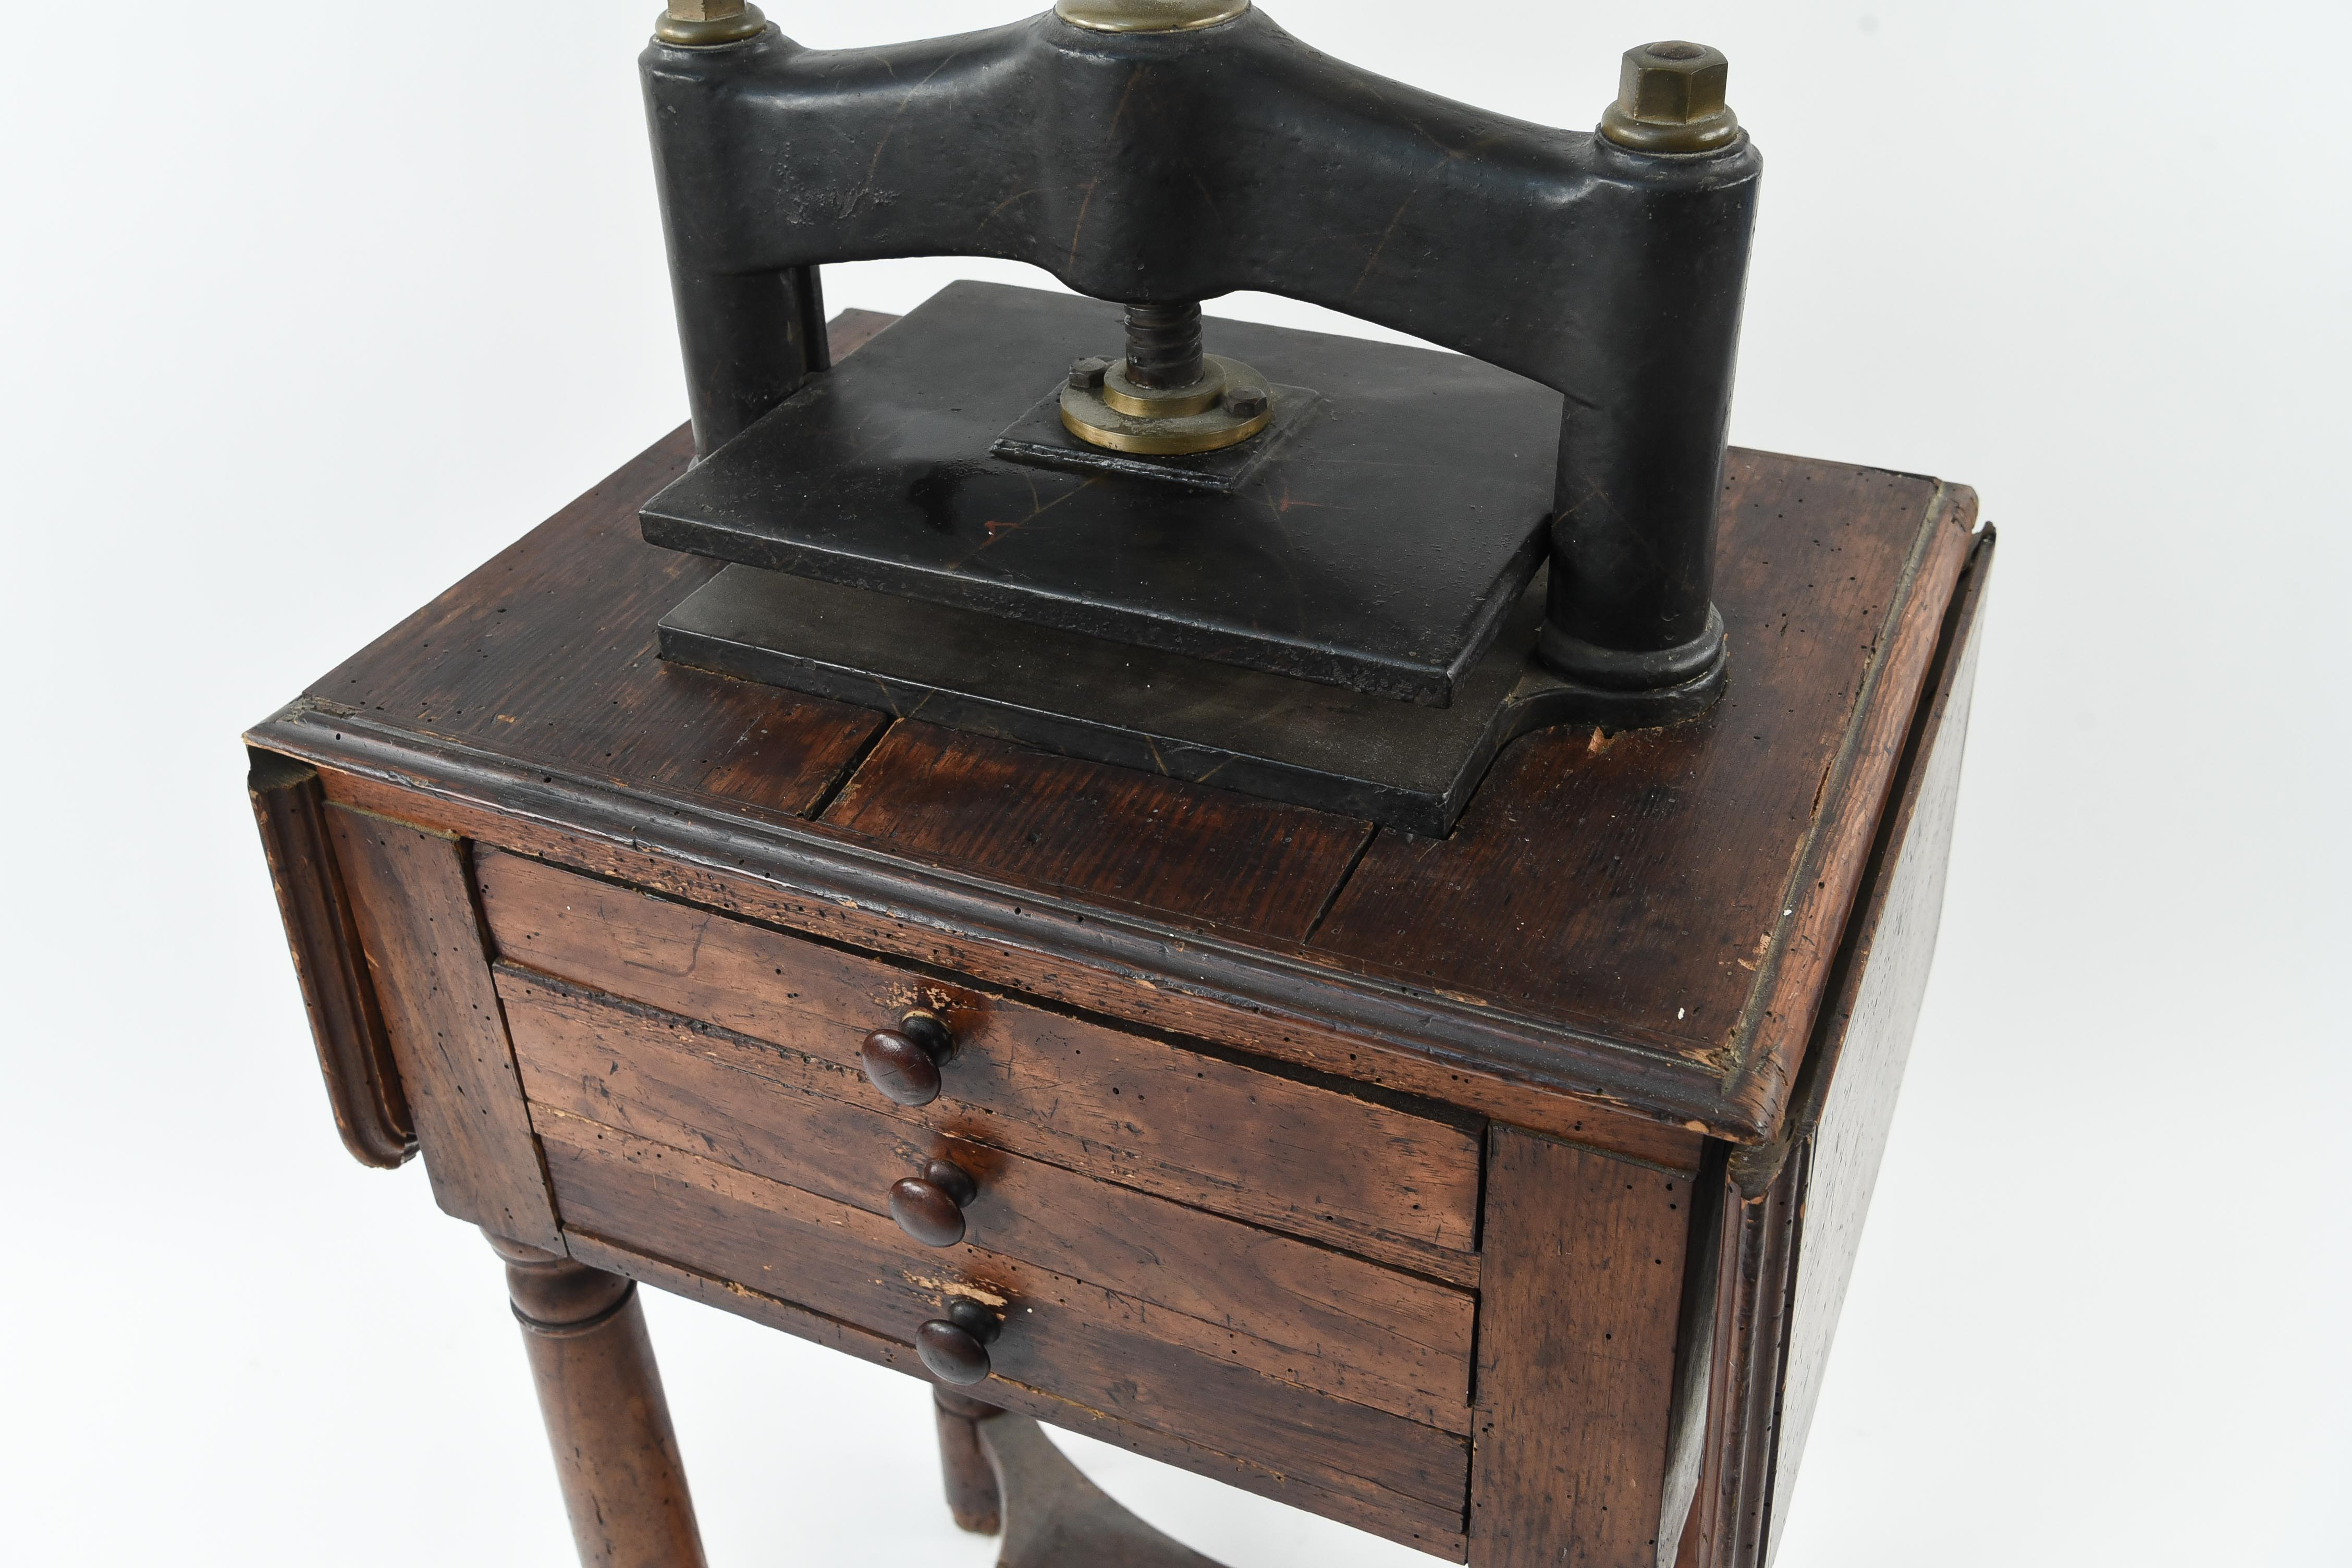 Antique 19th Century Book Press on Work Table - West Port ...